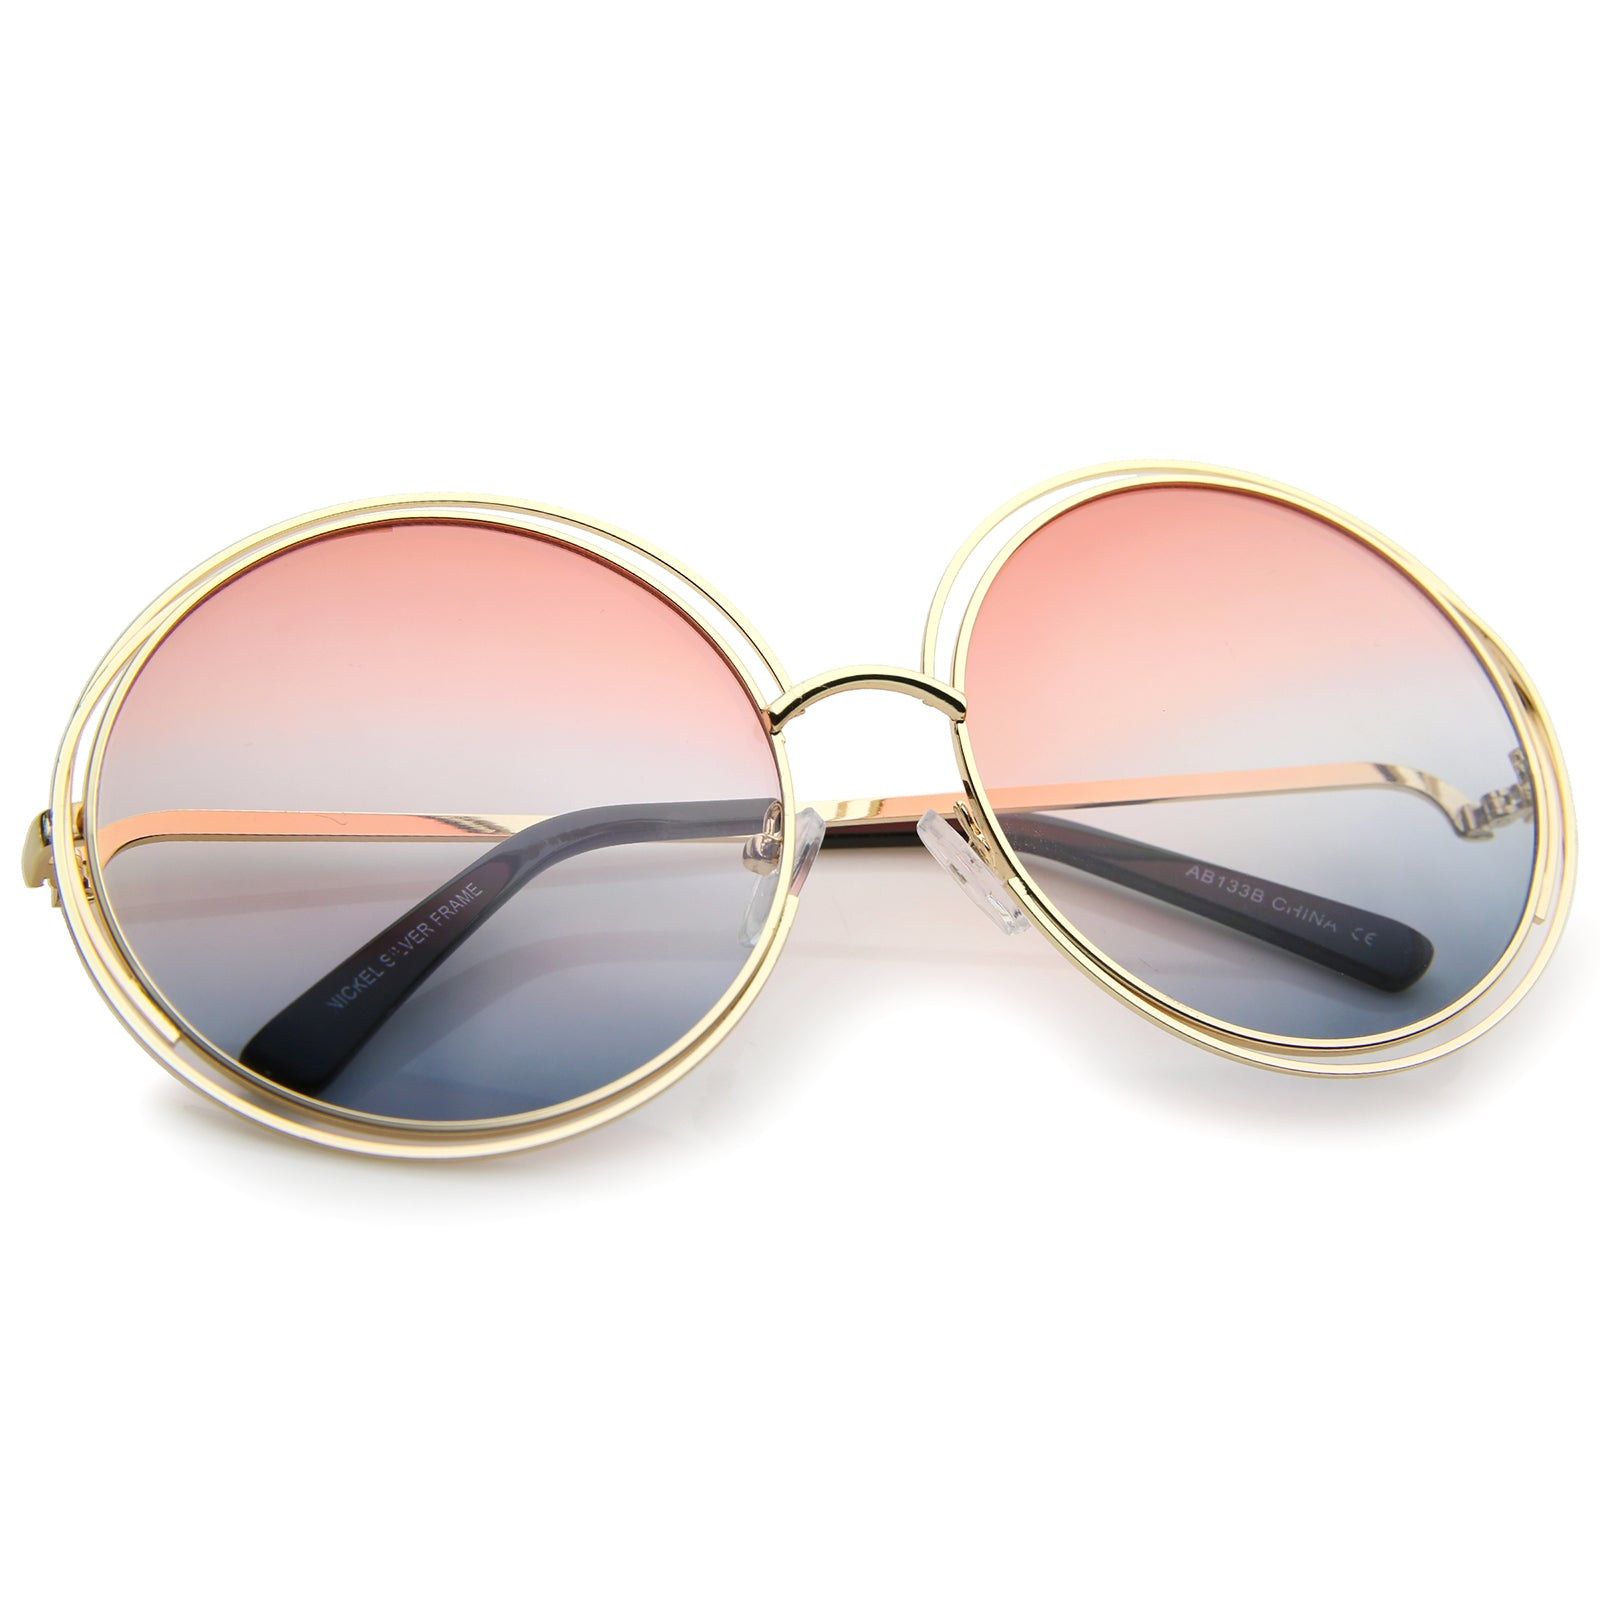 Oversize Wire Frame Gradient Two-Tone Color Lens Round Sunglasses 61mm - sunglass.la - 24